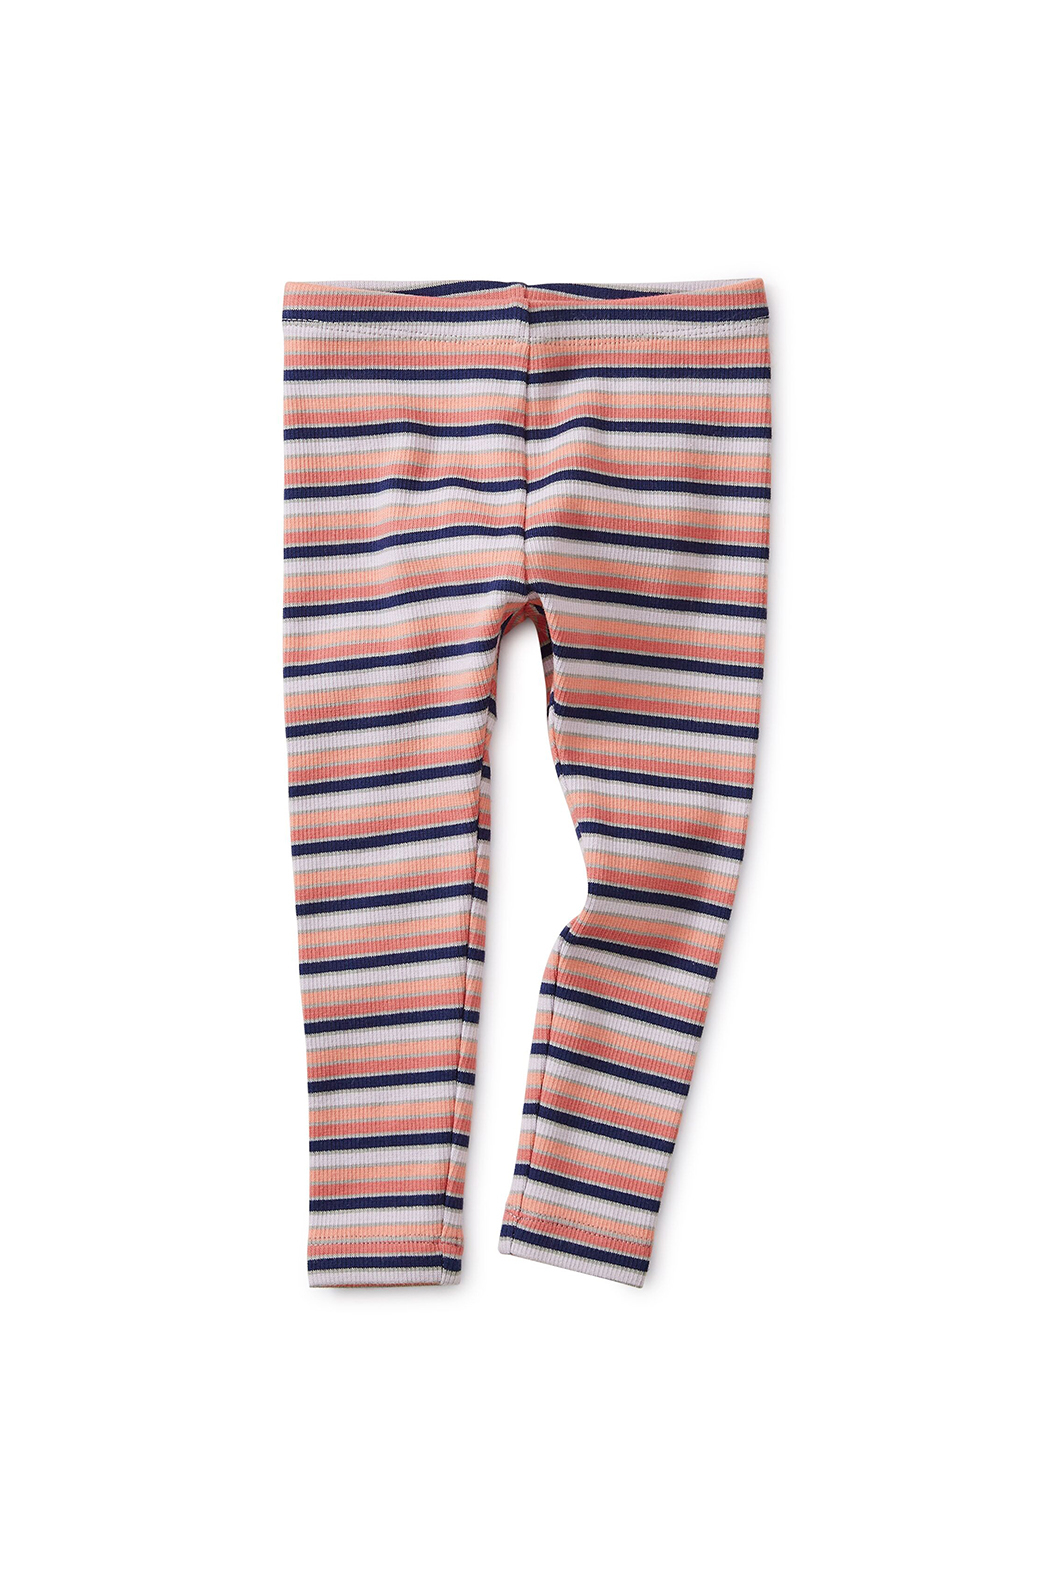 Tea Collection Striped Ribbed Baby Leggings - Front Full Image